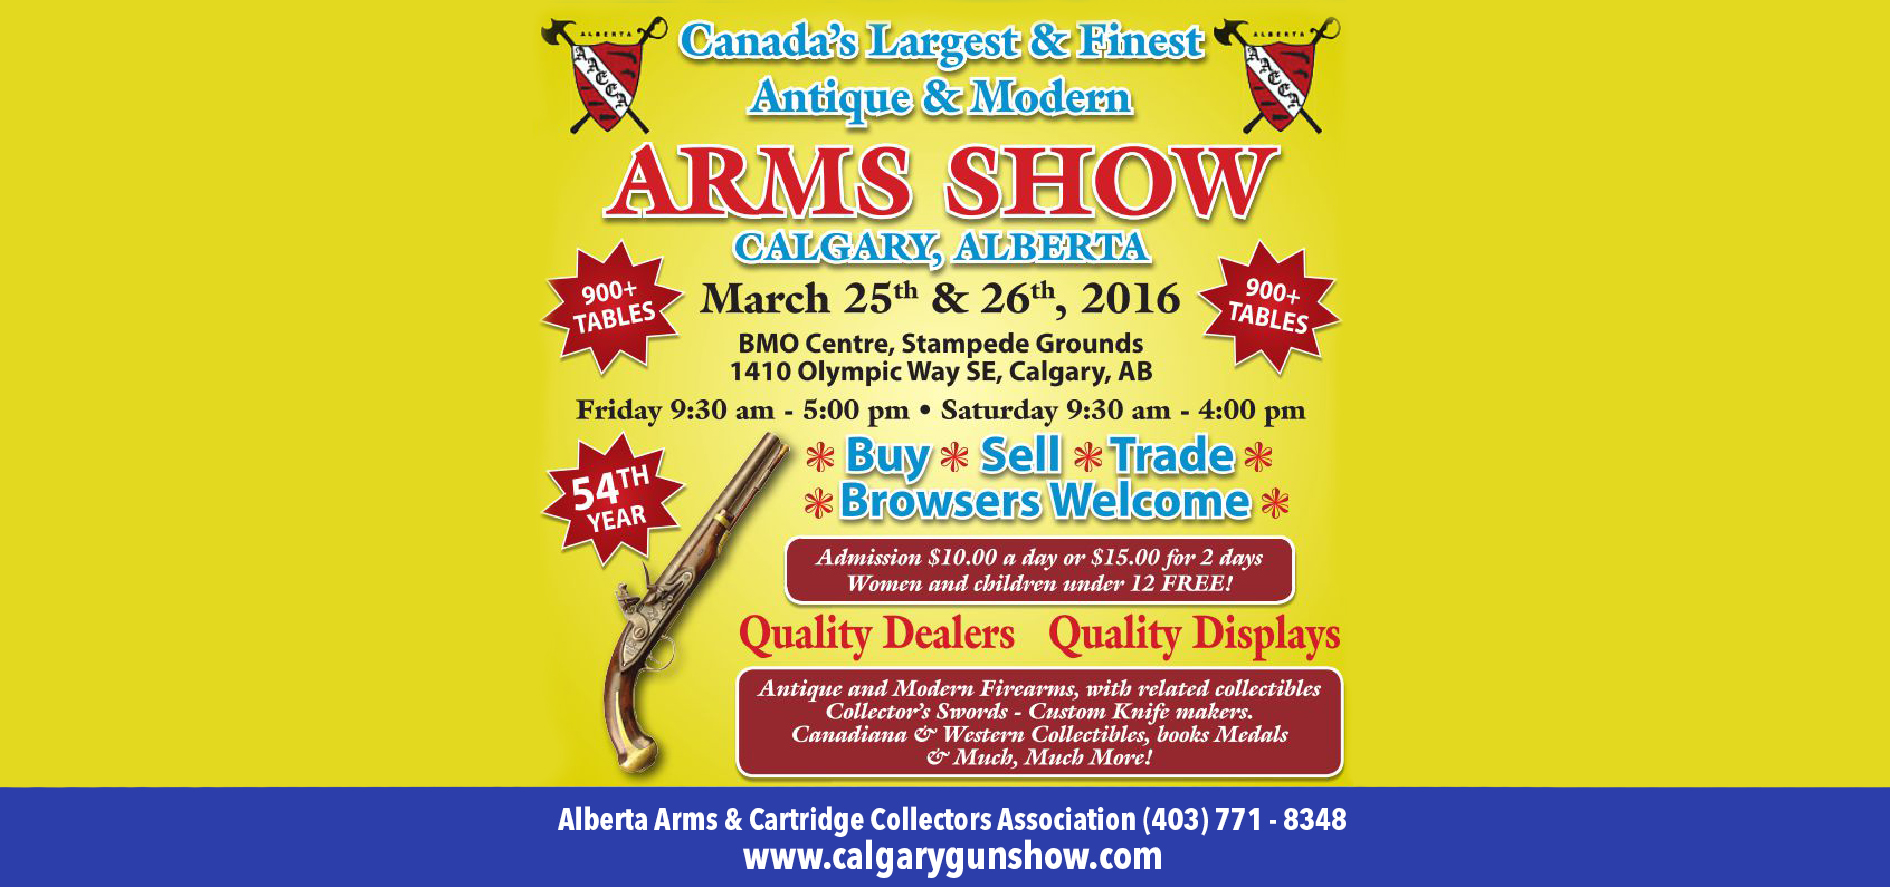 http://www.calgarygunshow.com/shows.html ALBERTA ARMS & CARTRIDGE COLLECTORS ASSOCIATION -CANADA'S LARGEST AND FINEST GUN SHOW MARCH 25 AND 26, 2016 | BMO CENTRE, STAMPEDE PARK, CALGARY, AB HOURS: Friday 9:30 a.m. to 5 p.m. and Saturday 9:30 a.m. to 4 p.m. Admission for adults: $10, ladies and children under 12 accompanied by an adult are free. 0 […]